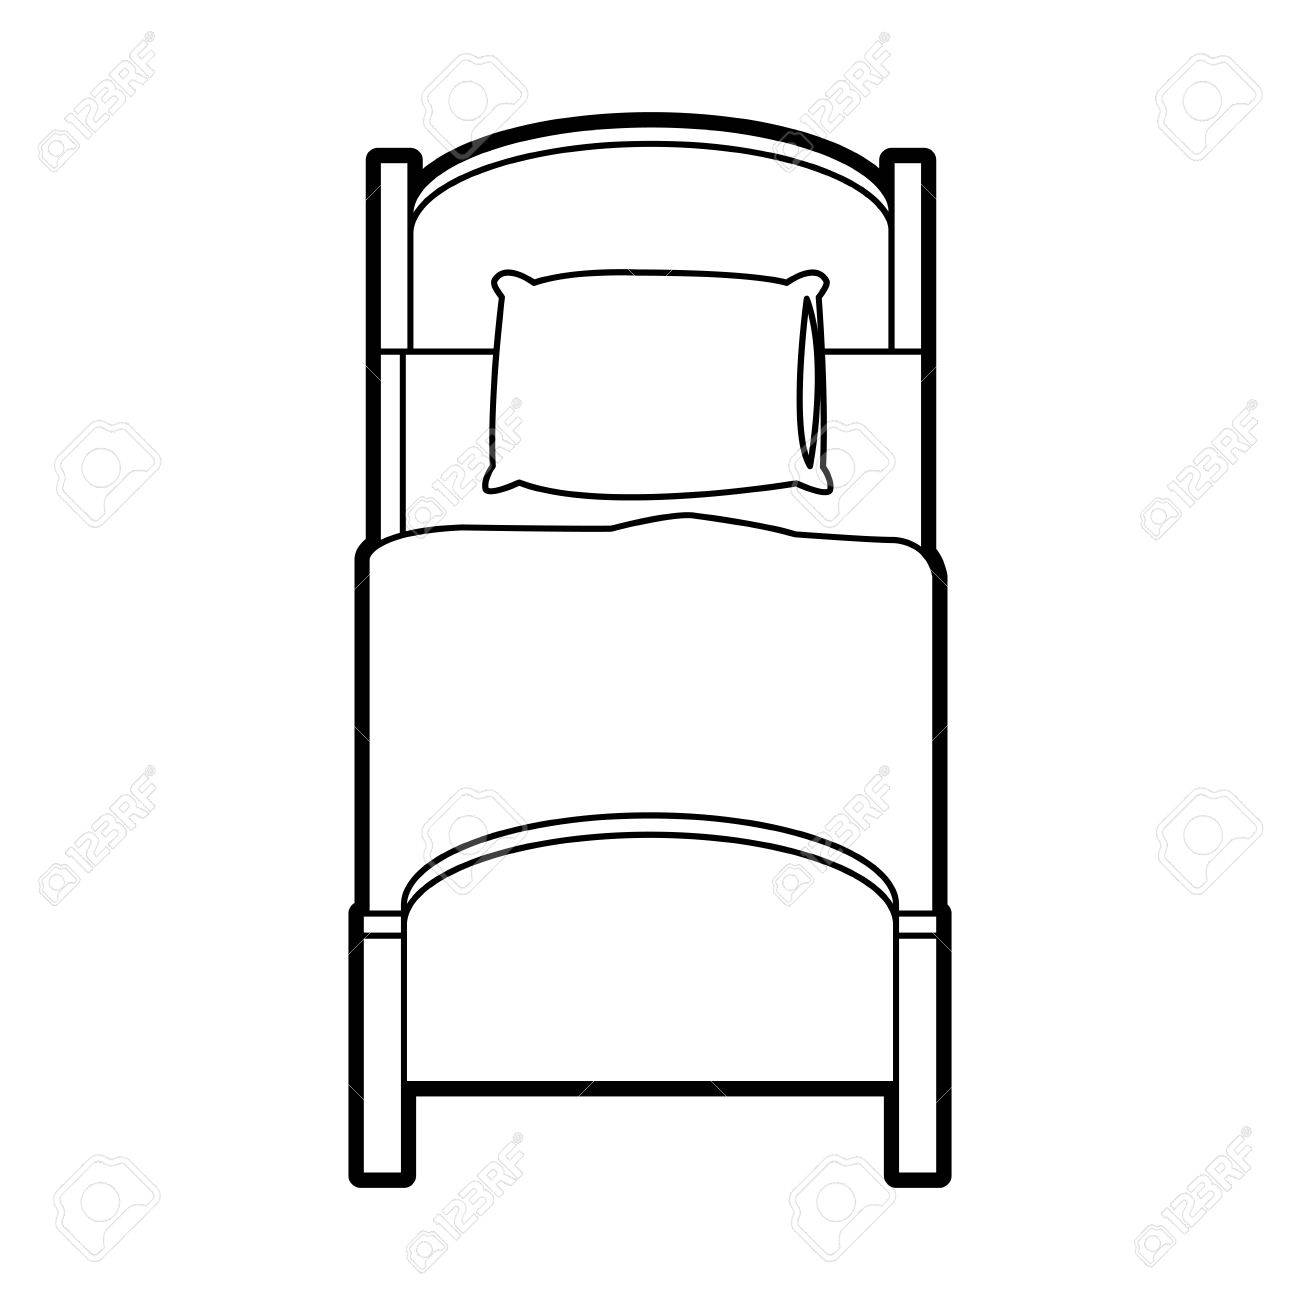 single bed top view. Single Bed Topview Icon Image Vector Illustration Design. Stock - 76184830 Top View |